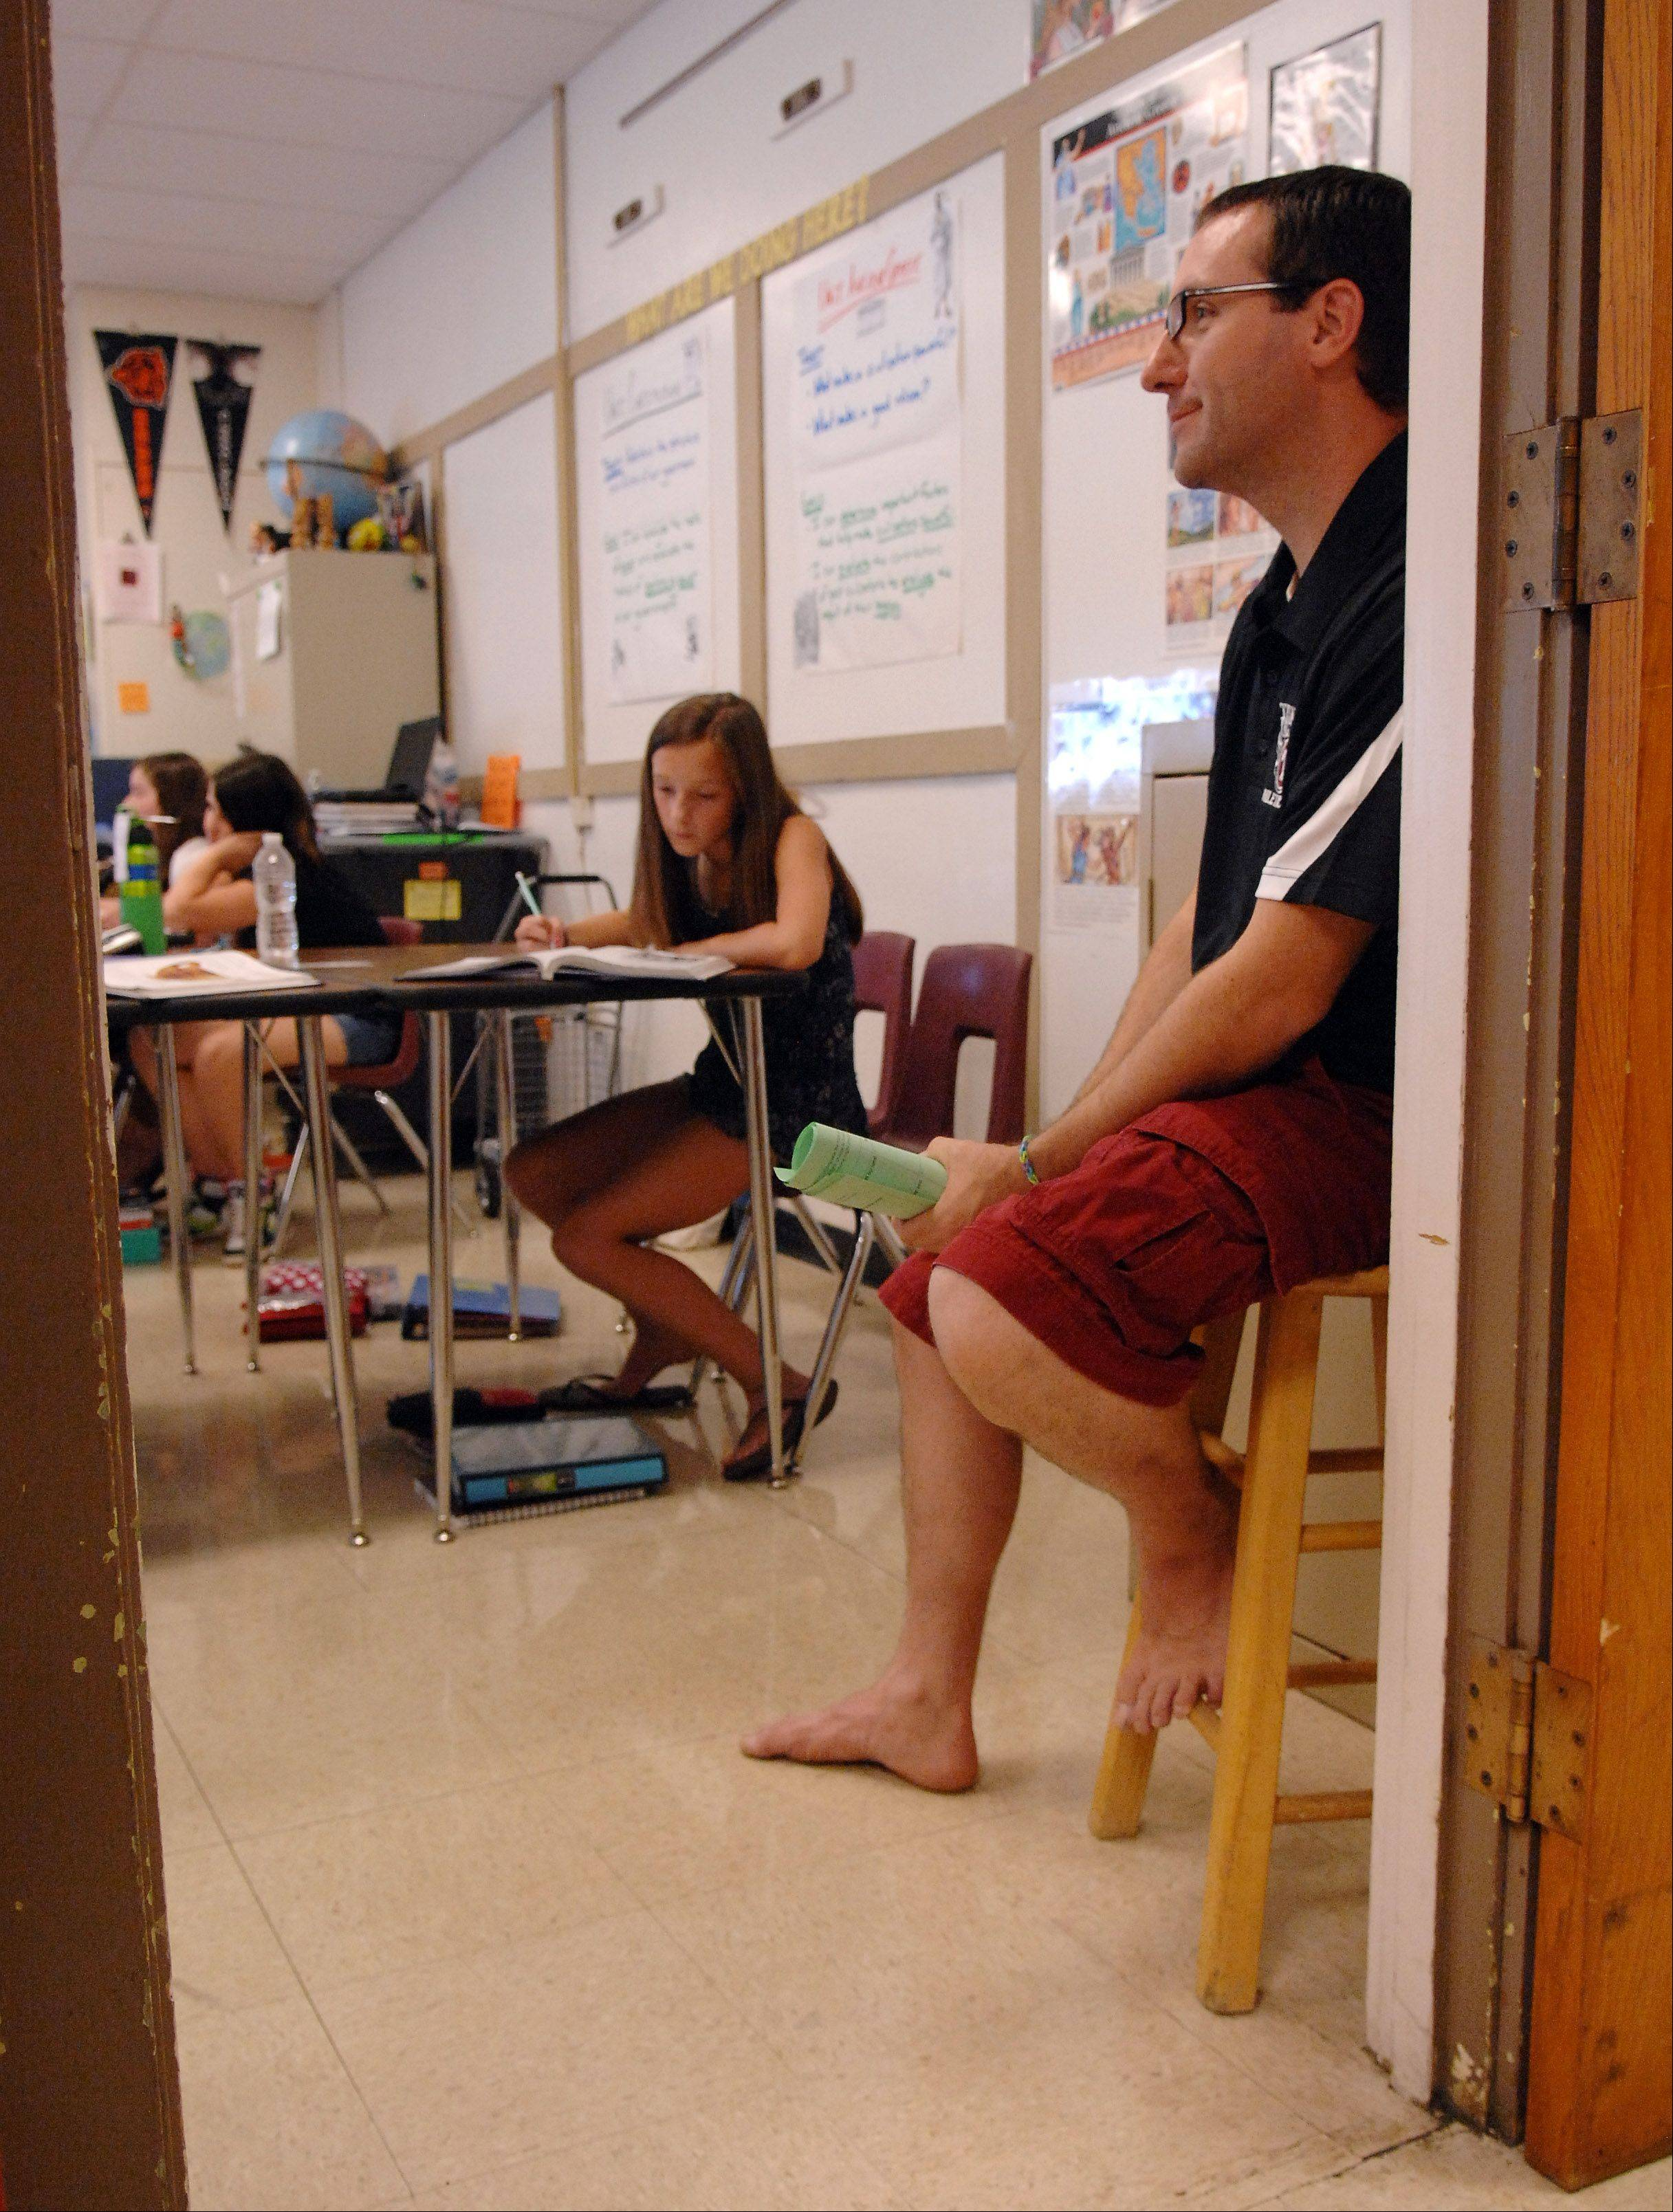 "Thompson Middle School social studies teacher Chris Ashline slipped off his flip-flops and sat by the door as he taught class Tuesday in St. Charles. ""It's the first time in my 10 years of teaching here that I've worn shorts,"" Ashline said."